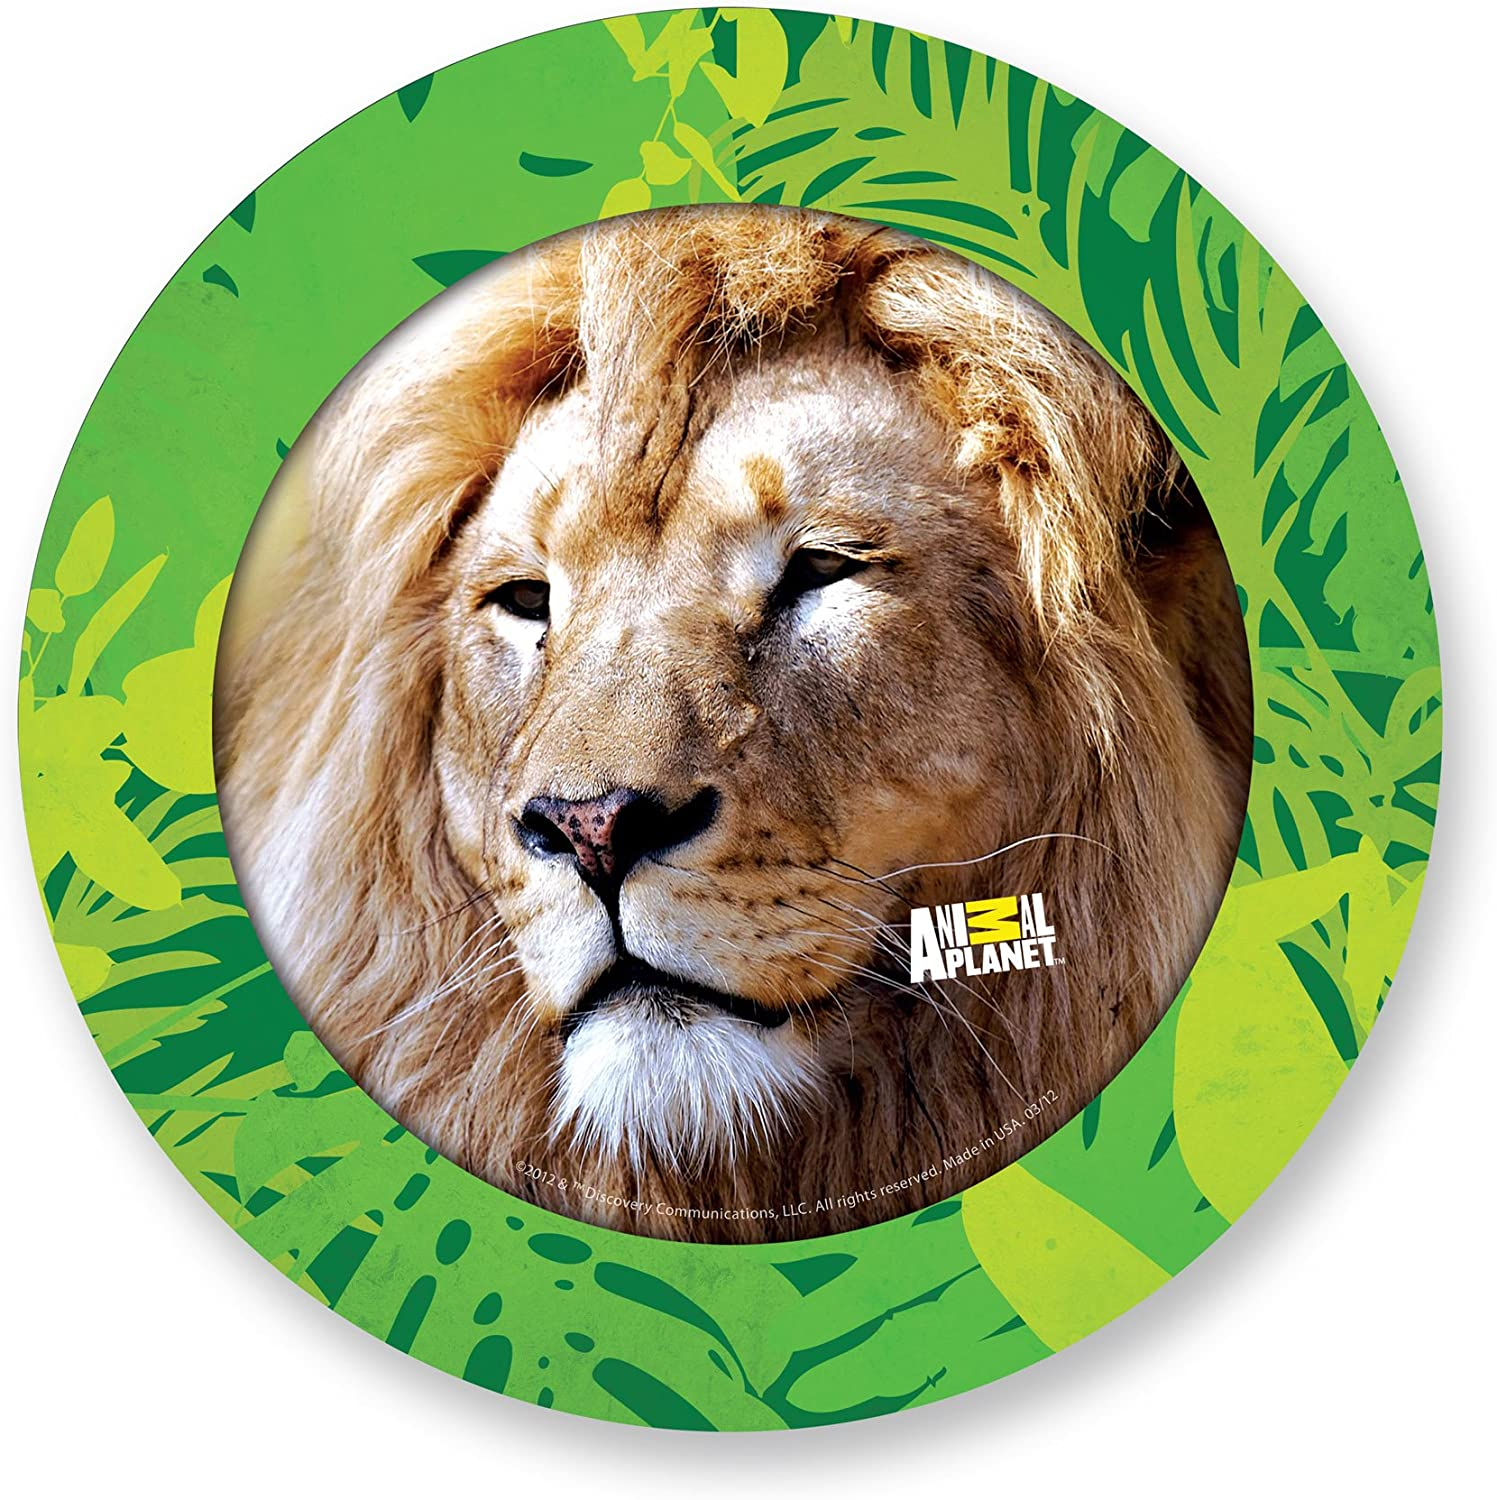 Primary Colors Animal Planet 9-Inch Party Plates 877 Set of 8